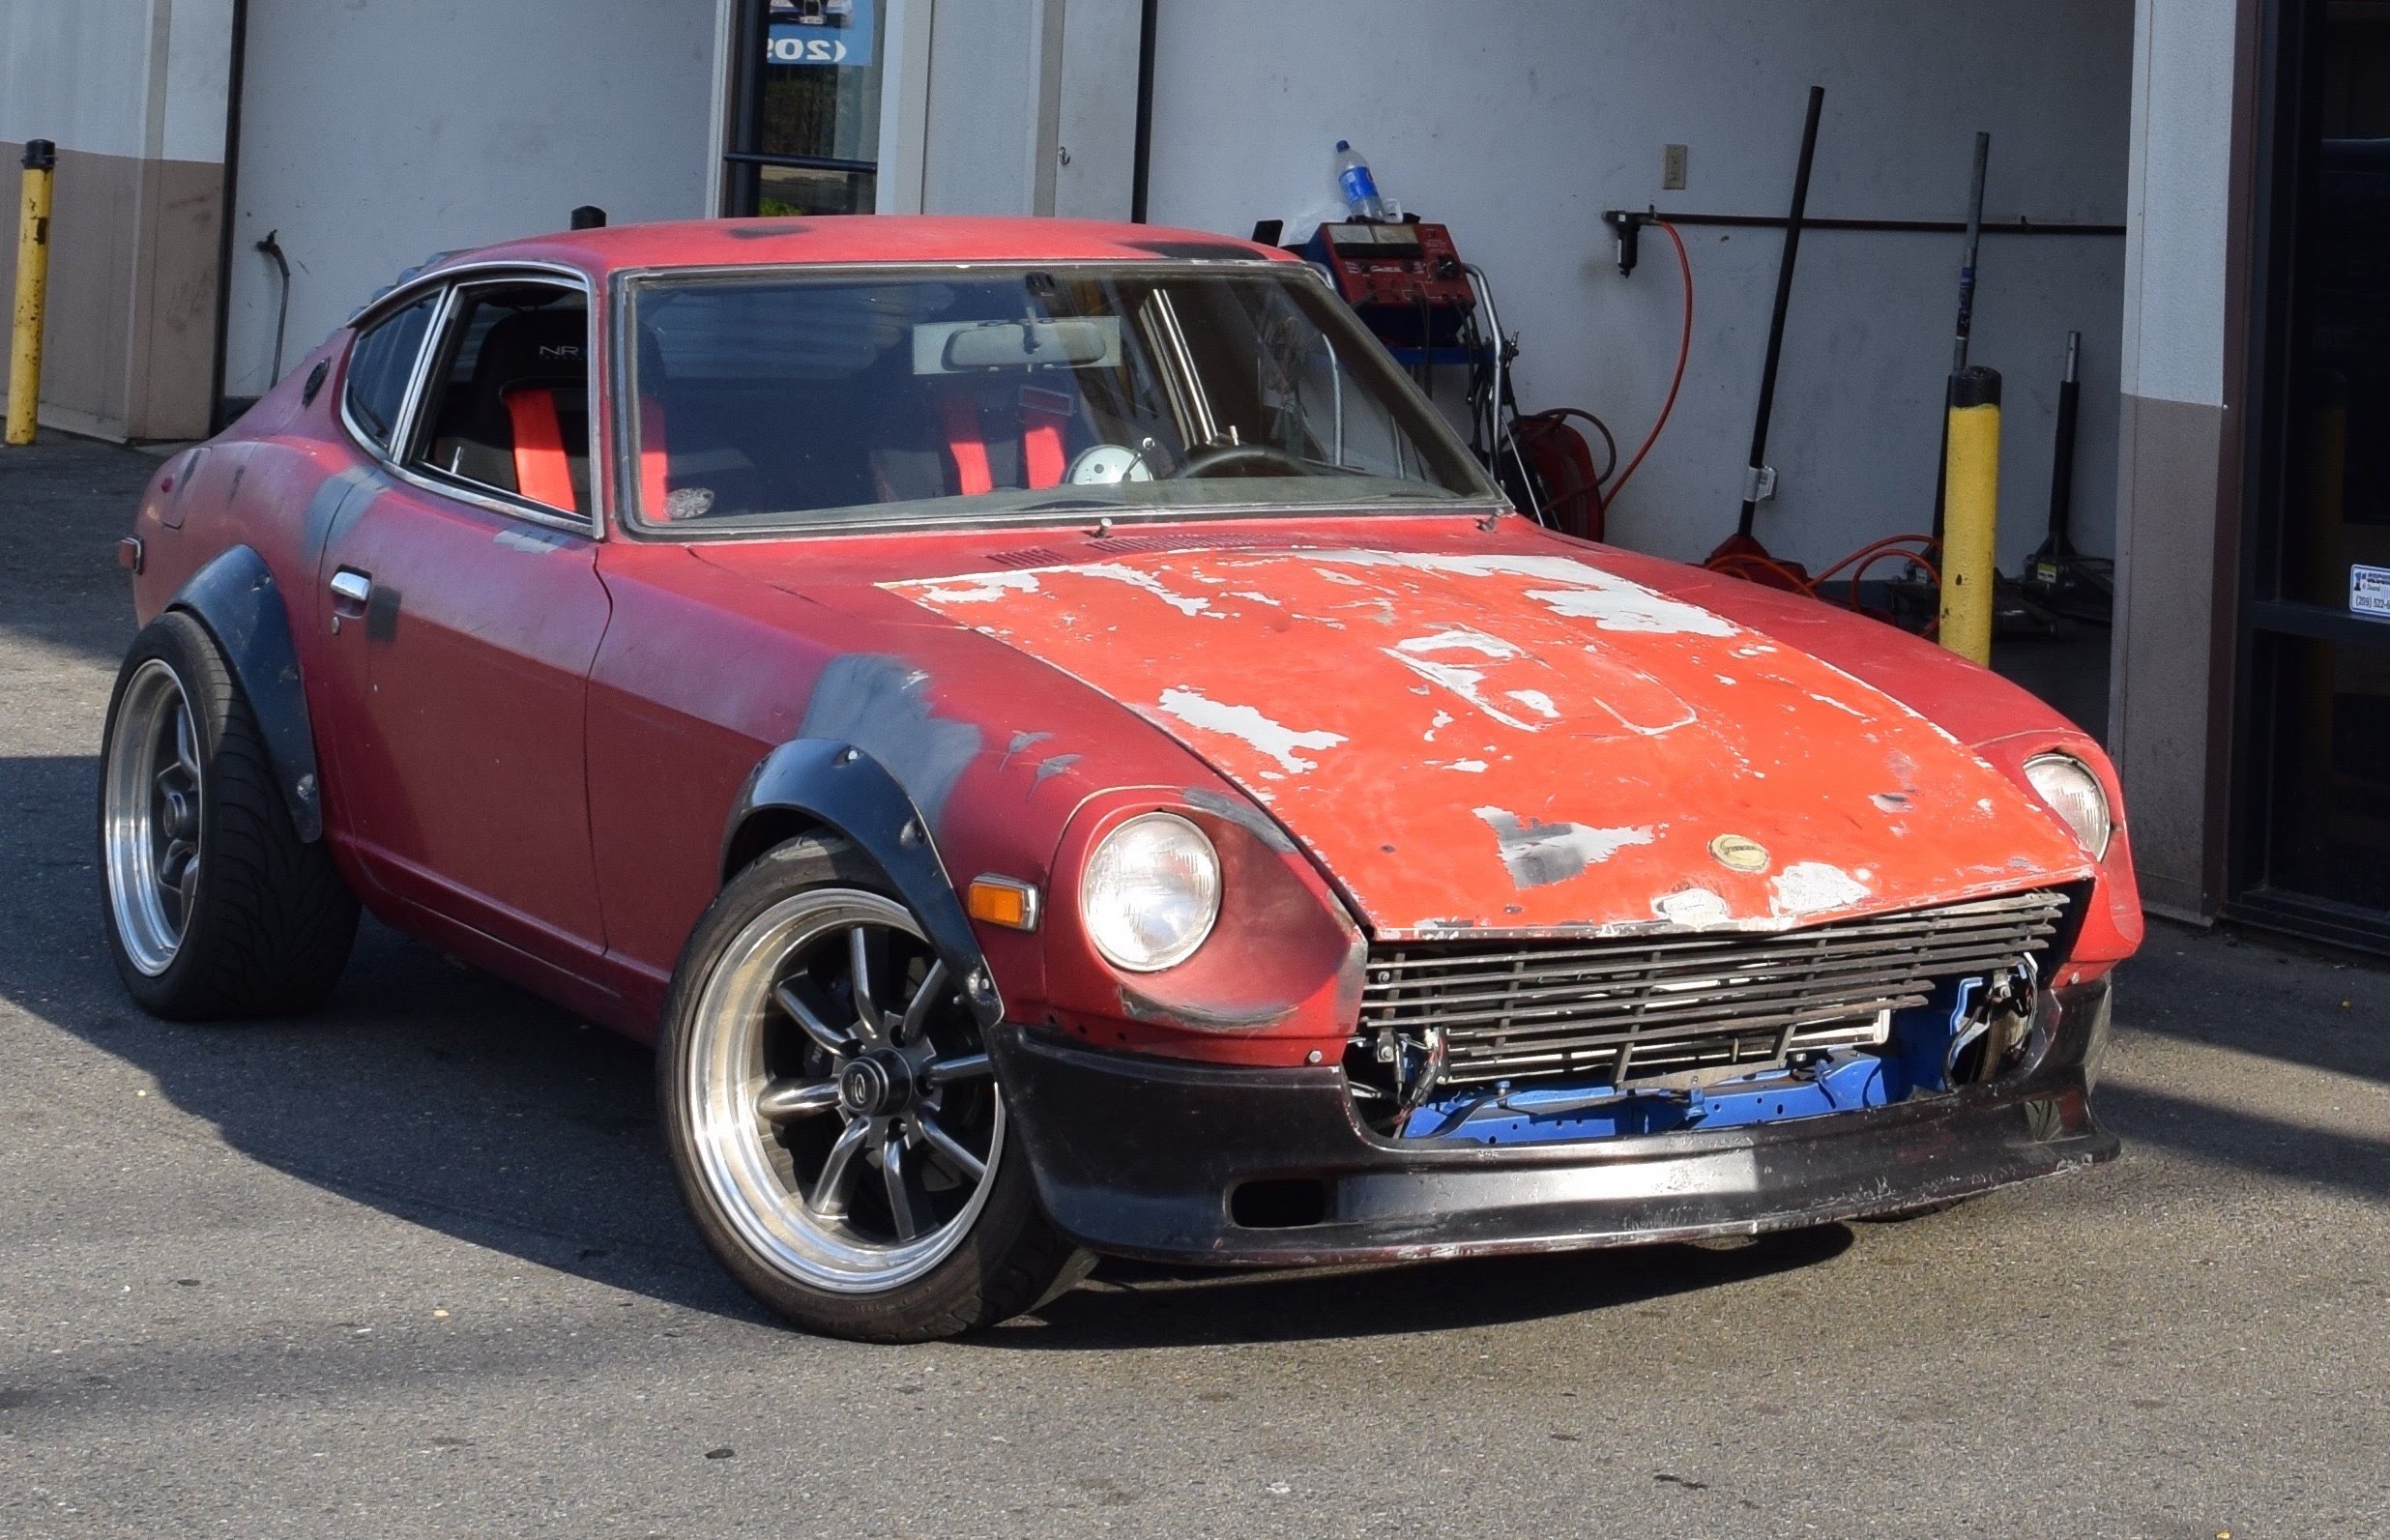 You Gonna Love This 27Z Swapped Datsun 270Z! Amazing Sleeper!